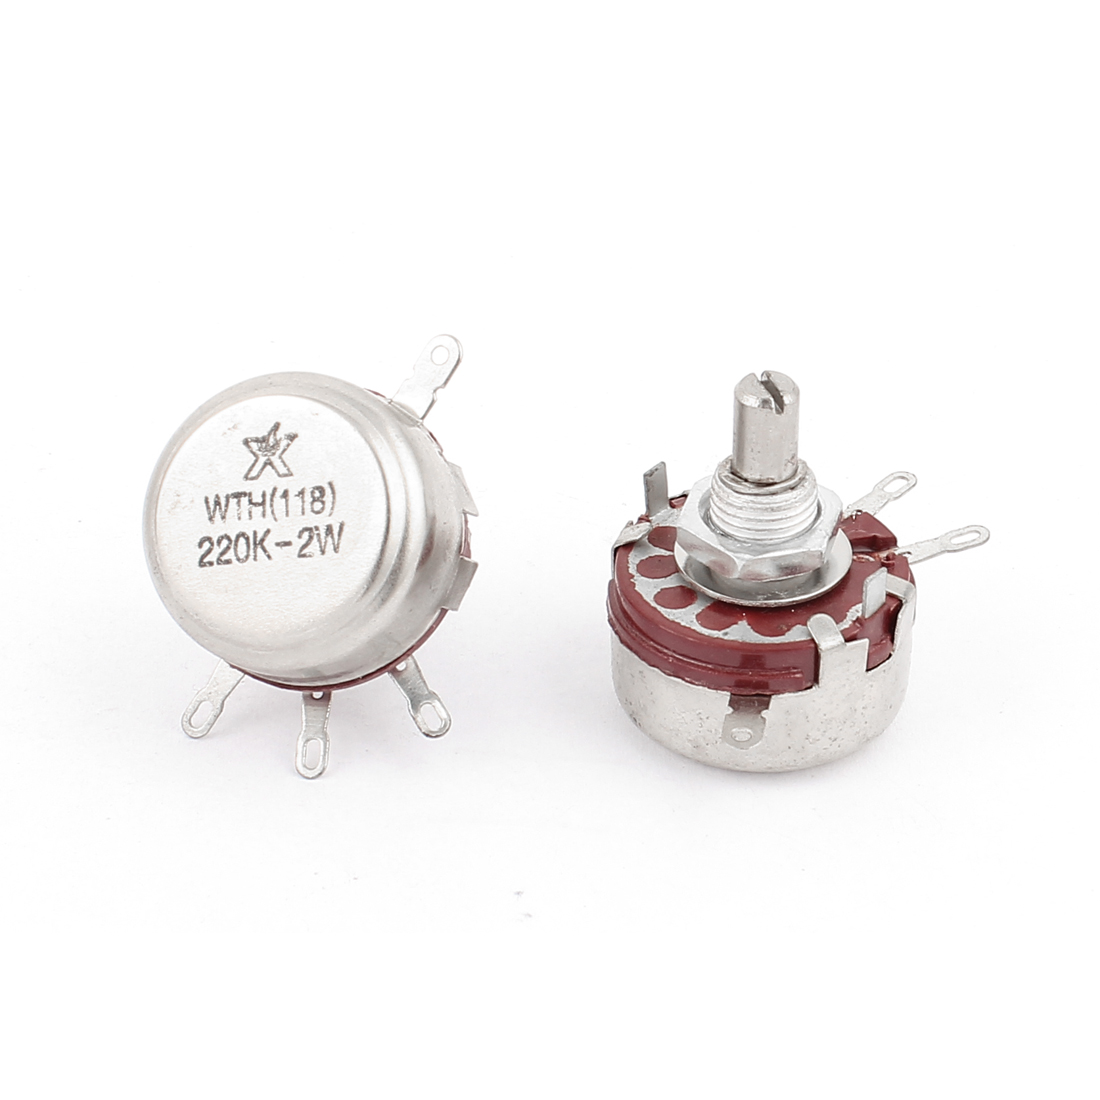 WTH(118) 220K Ohm 2W 4 Terminals Rotary Taper Potentiometer 2pcs